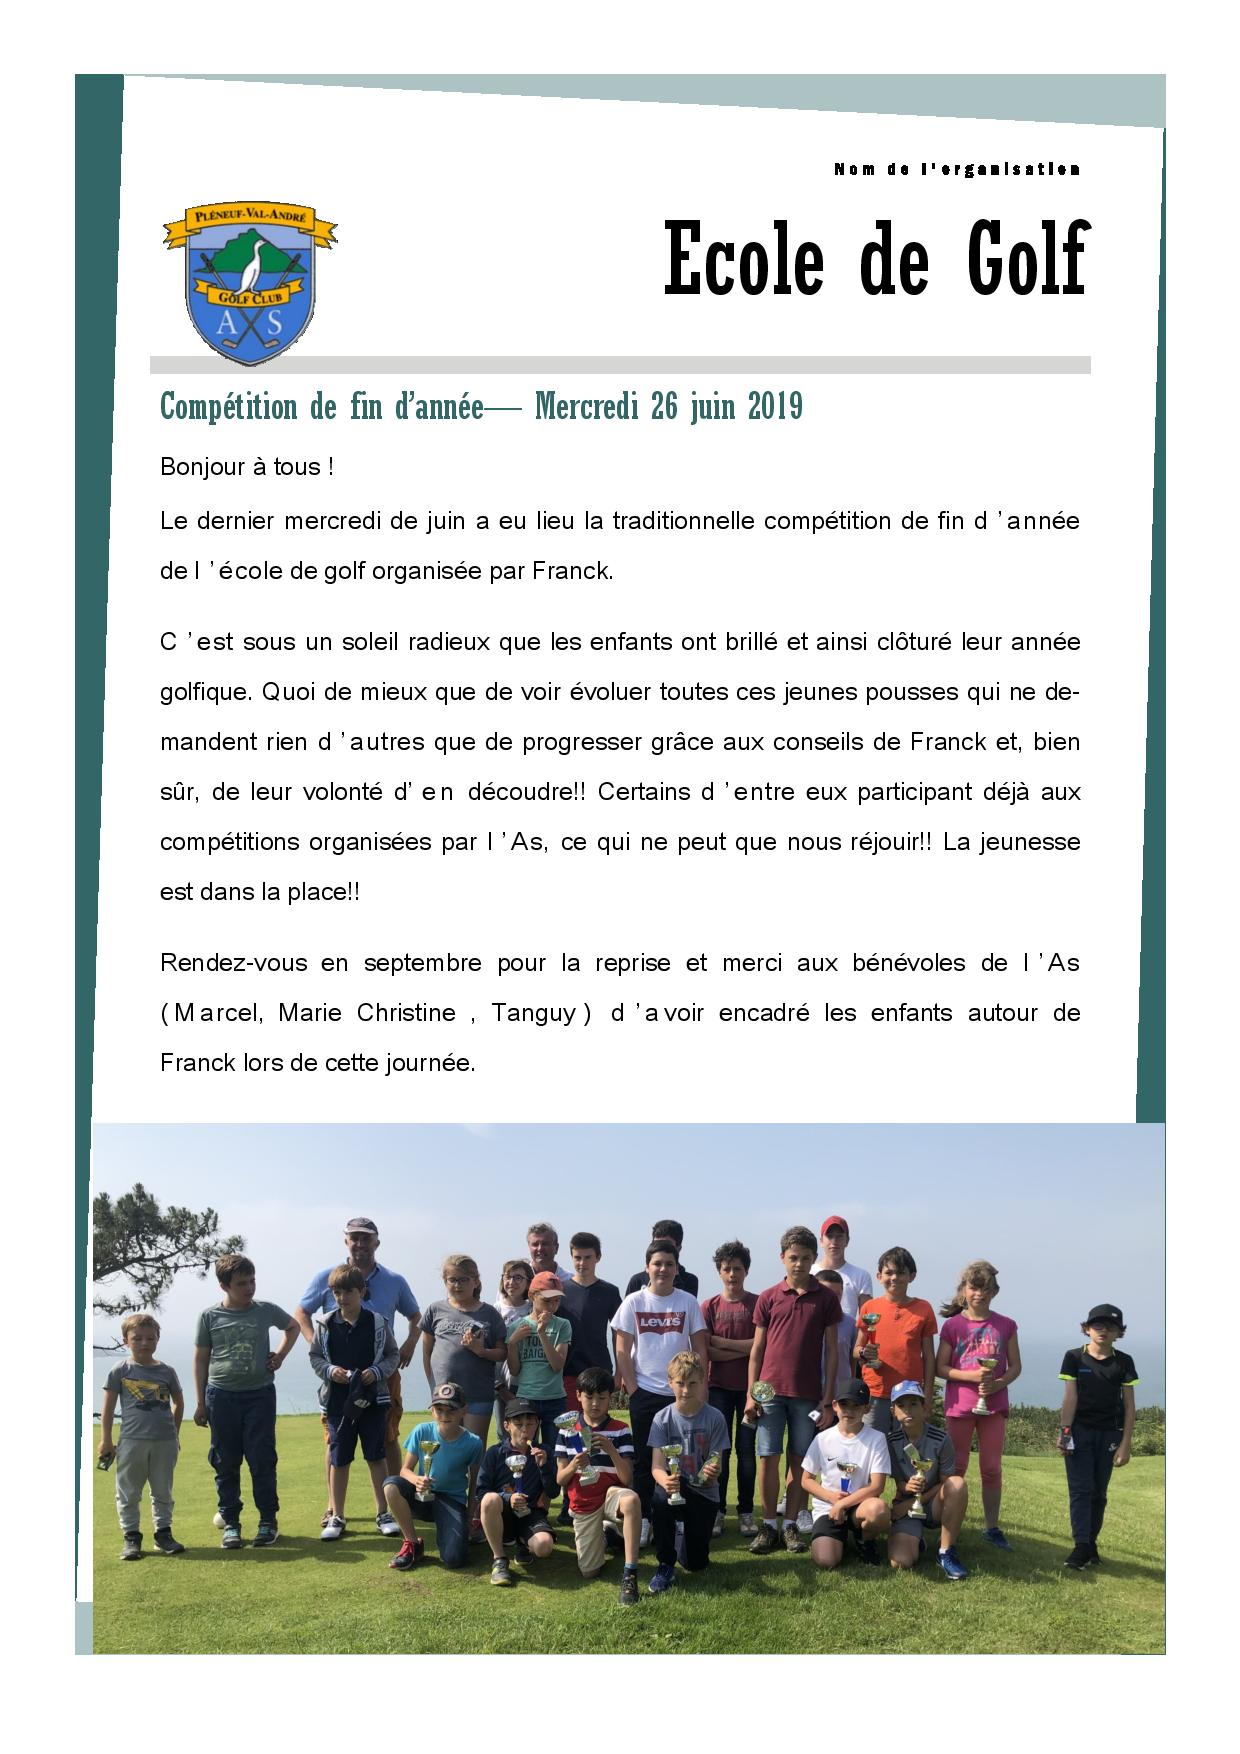 Ecole_de_golf_Competition_de_juin_2019-page-001.jpg